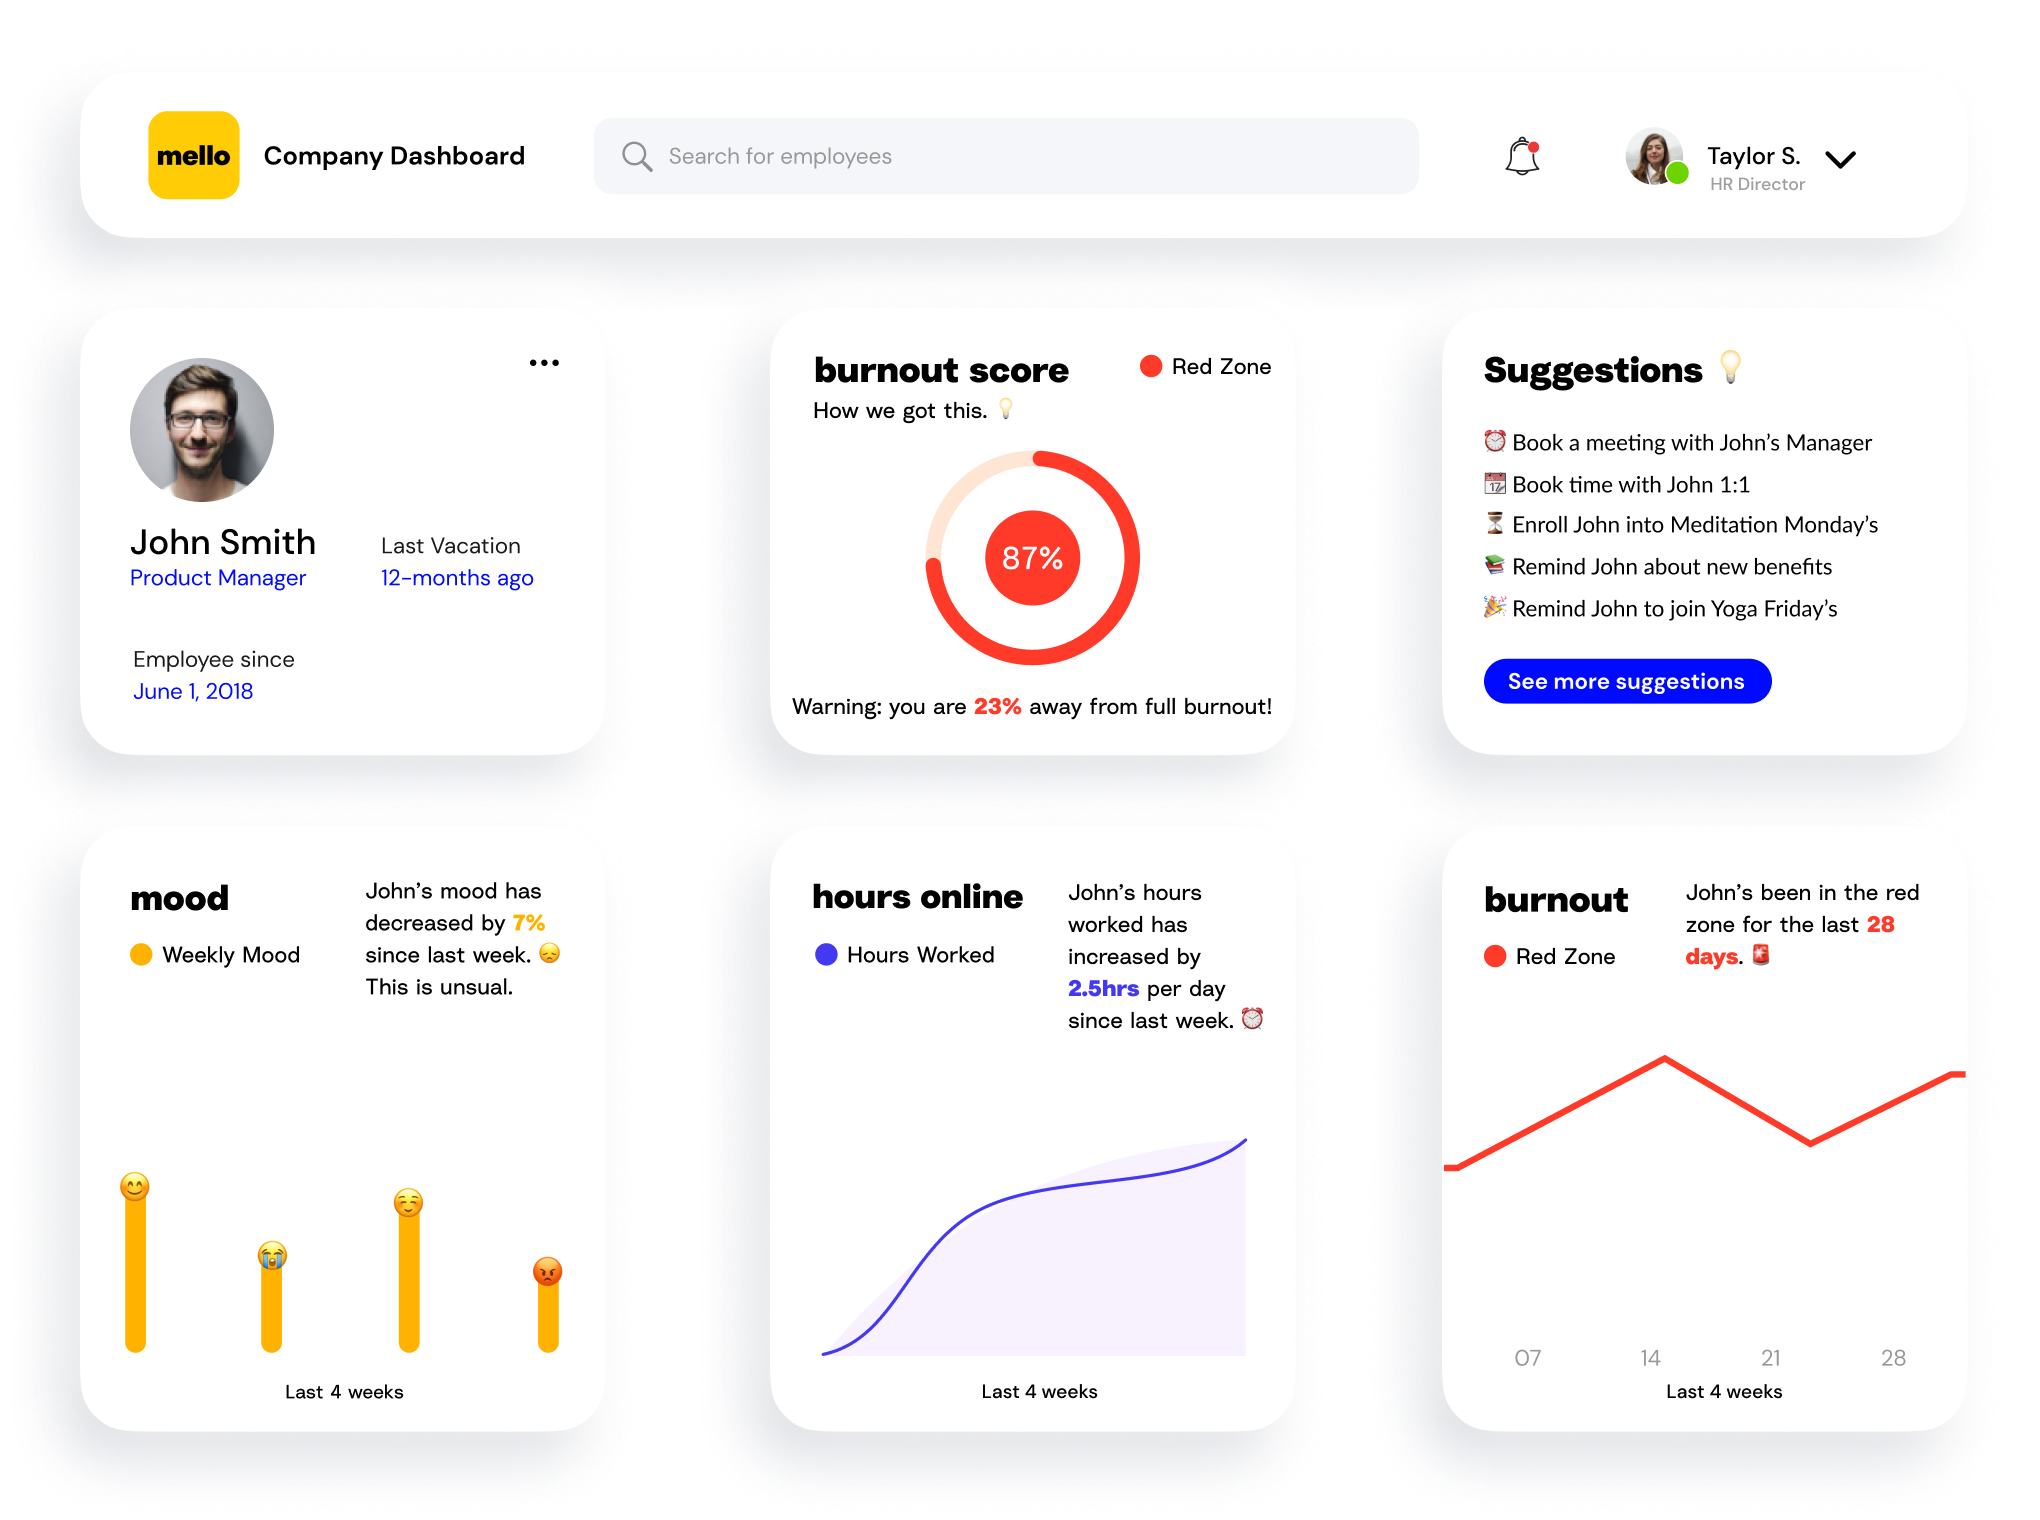 Image of the mello administrator dashboard including a panel for the employee information, a panel for burn out score, a panel for suggestions to help the employee for their wellness, a panel for mood tracking, a panel for productivity and a panel for burn out scores tracked over time.